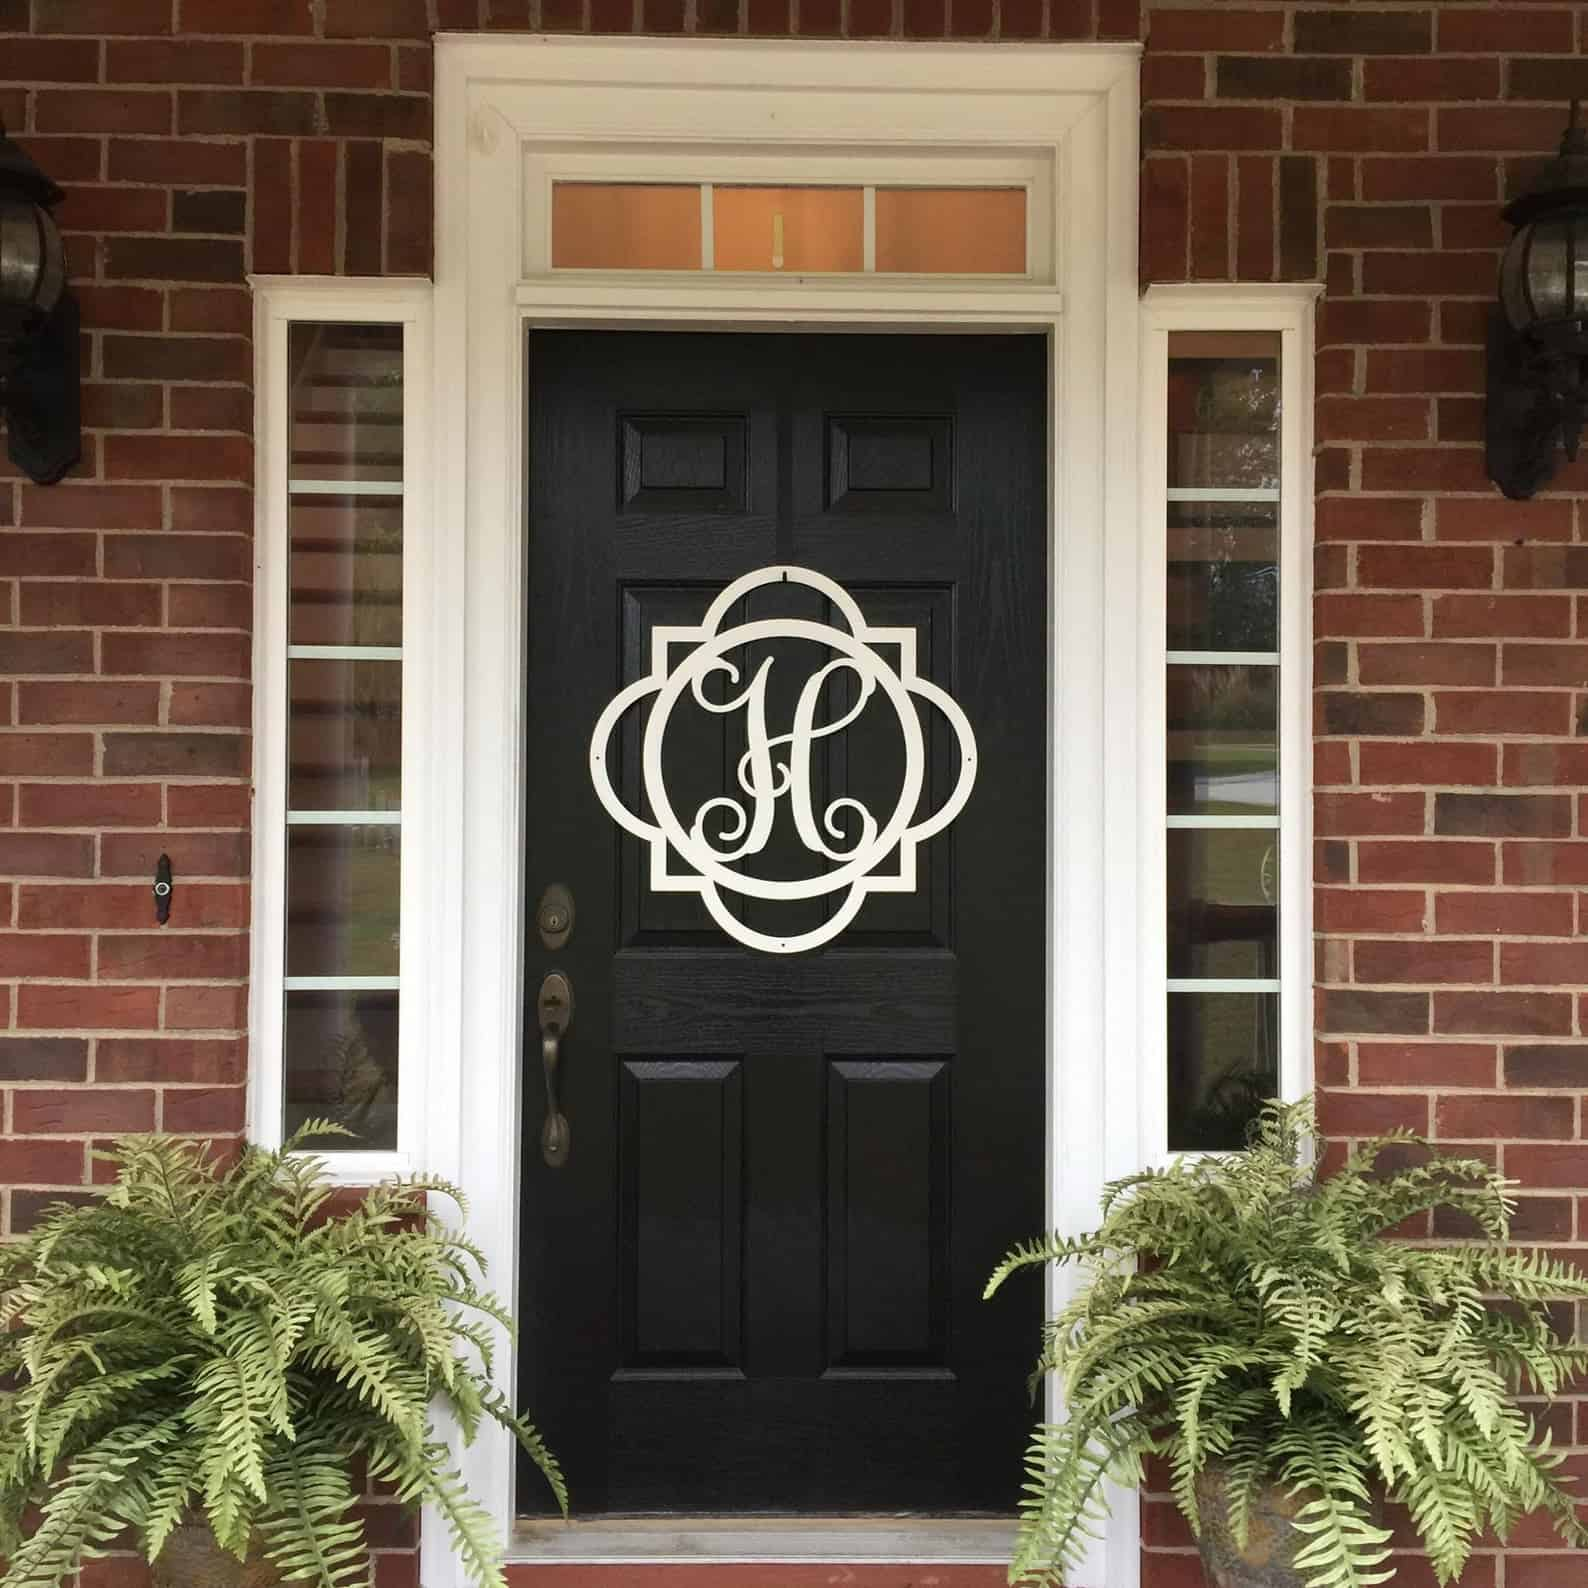 Monogrammed metal wreath